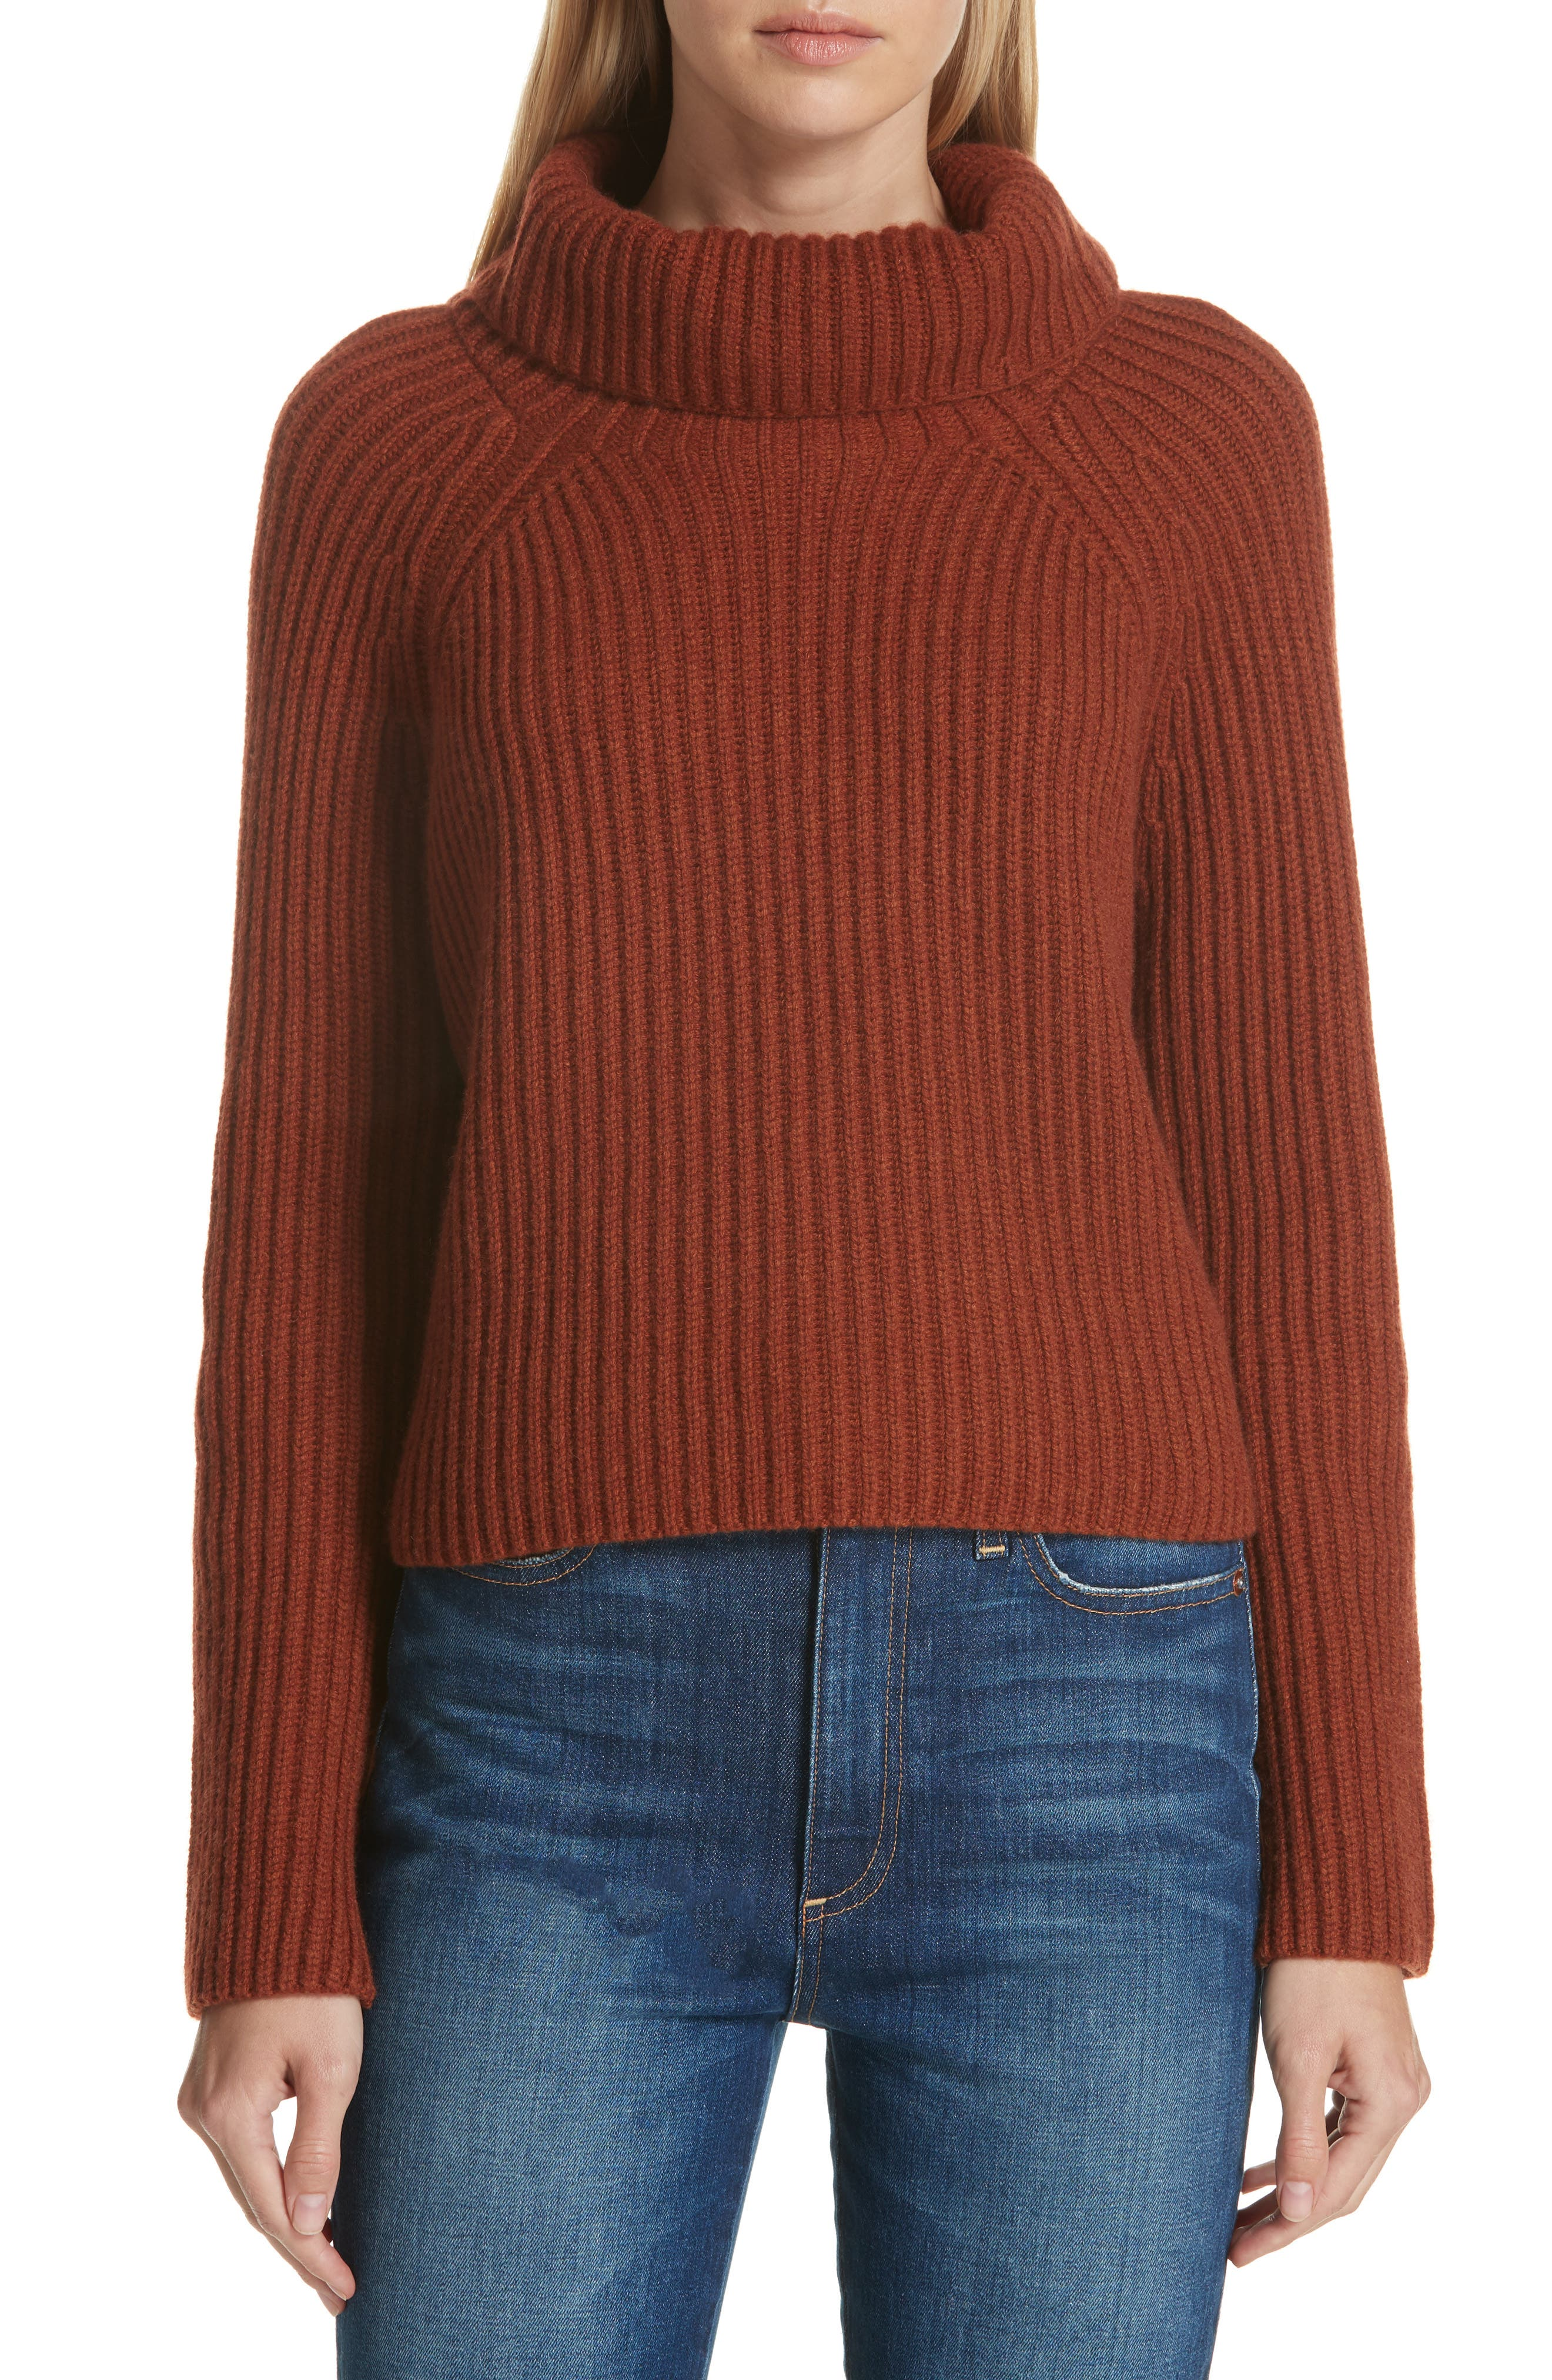 Ribbed Cashmere Turtleneck Sweater, Main, color, 221